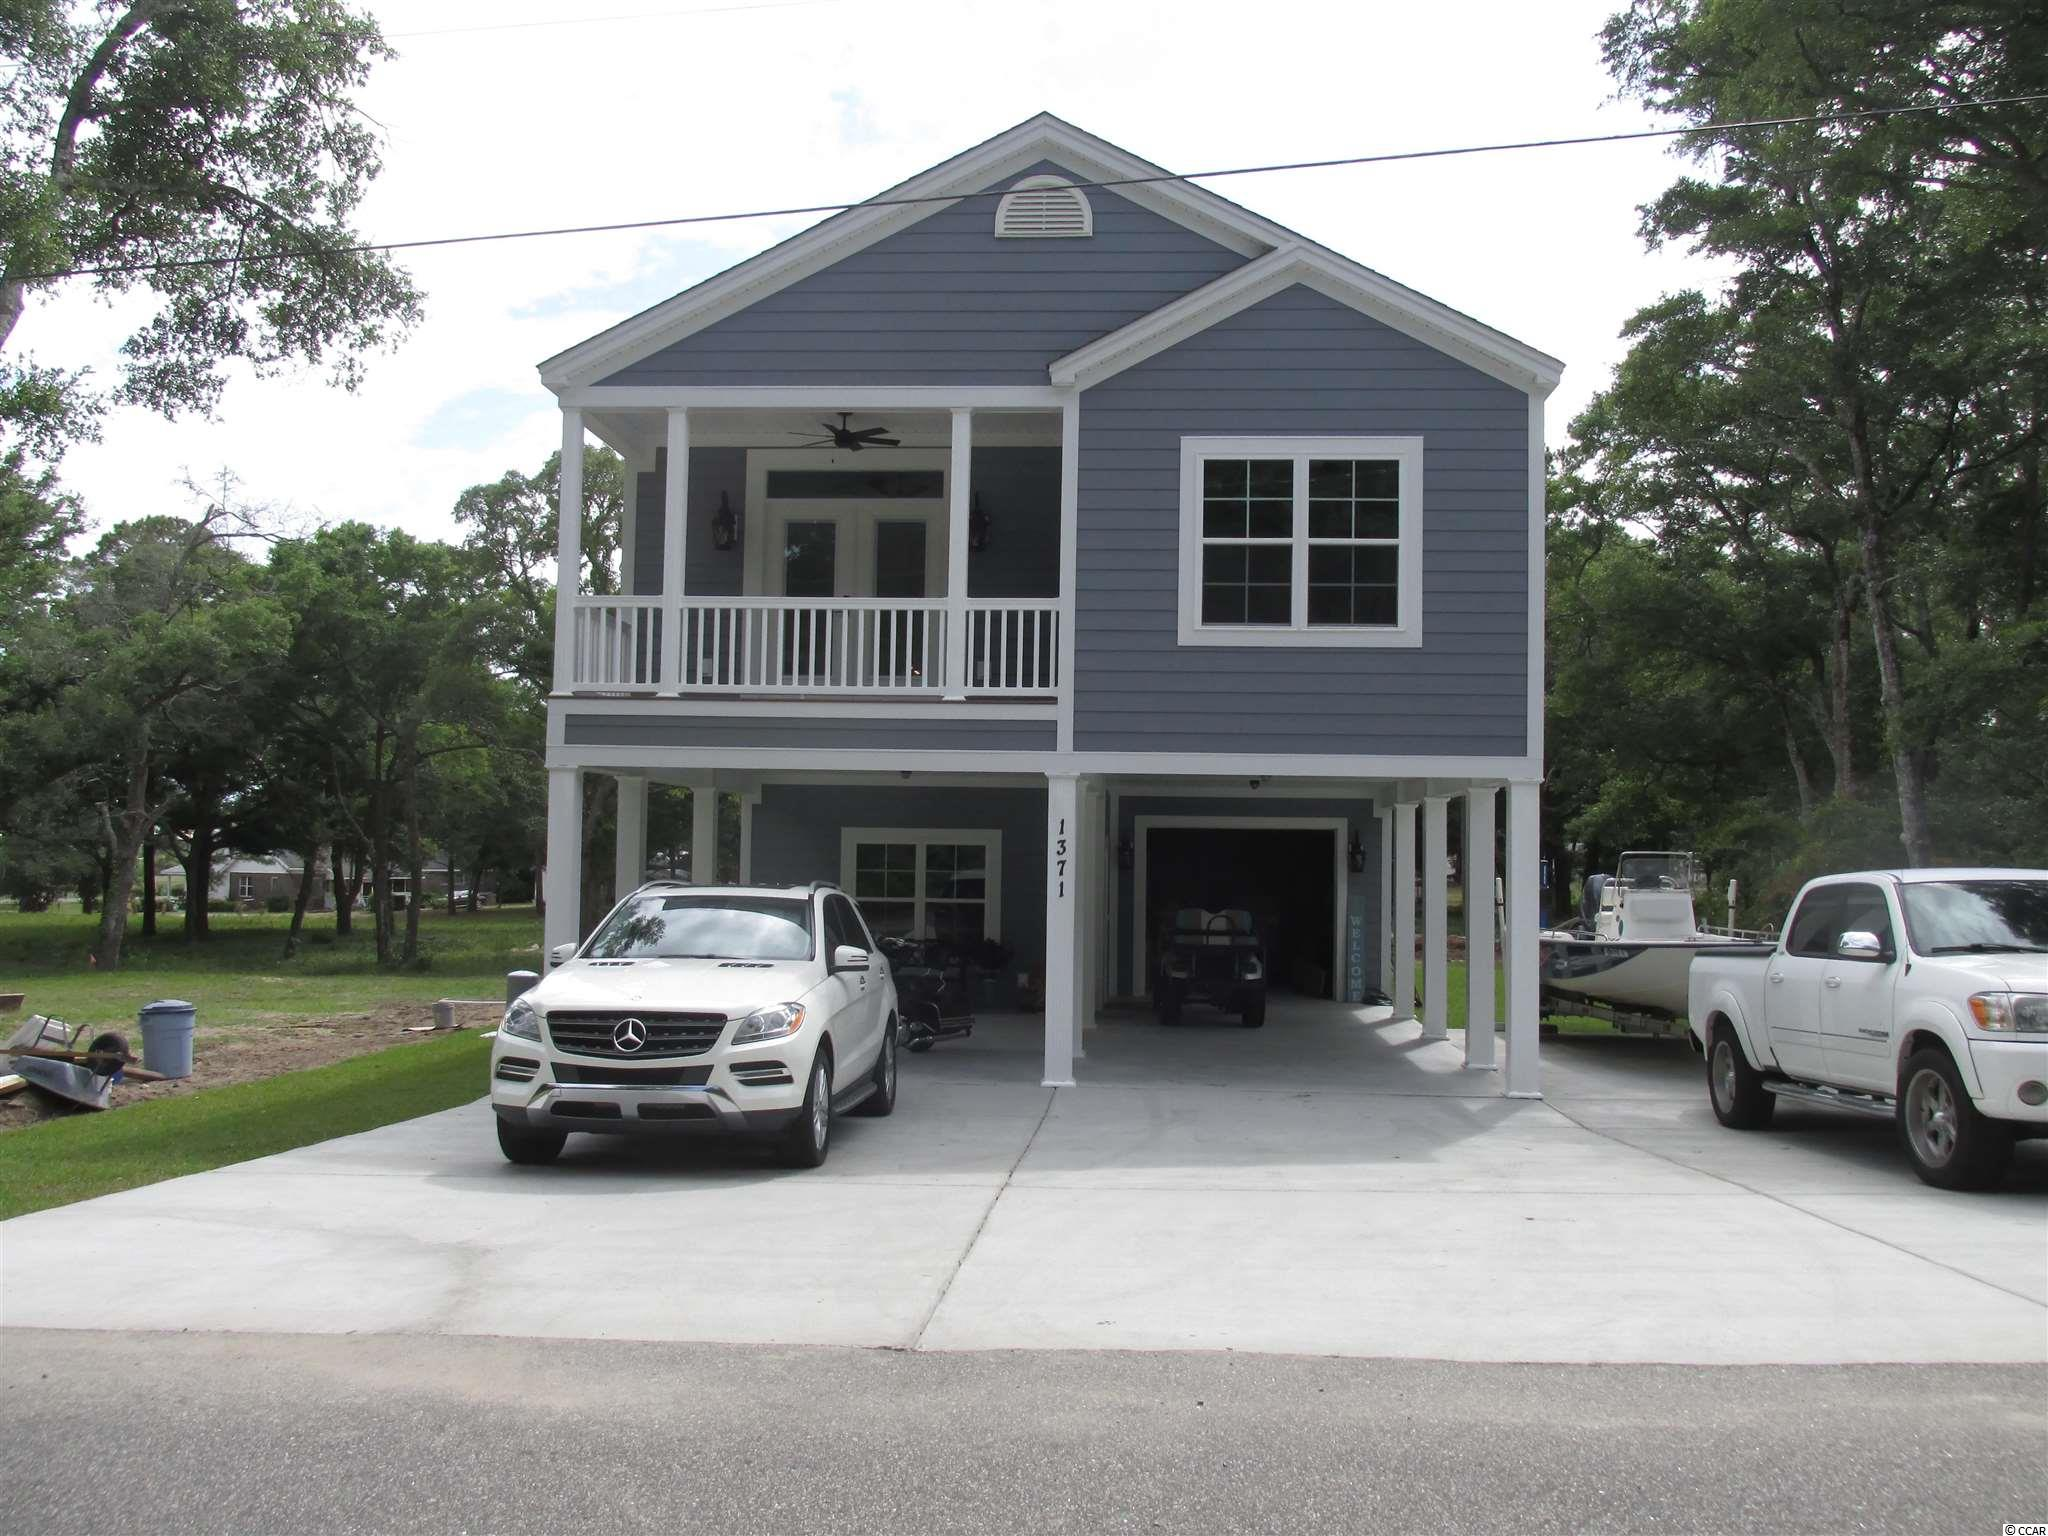 """A diamond in the rough! This area of the beach has some of the best views anywhere. Overlooks Hog Inlet in Cherry Grove and ocean views. Home features 3 bedrooms upstairs with an open floor plan and 2 full baths. Lots of upgrades! Kitchen offers granite countertops & stainless steel appliances. Vaulted ceilings, 5 1/4 base throughout, 3 1/4 casing on all windows and doors, wood floors, breakfast bar, ceiling fans in all bedrooms, granite countertops in kitchen and bathrooms, French doors, elevator shaft and buyer can add elevator at cost. The downstairs has 1 full bath with a large open room for entertaining or """"man cave"""" with an additional room for storage, office space, or could be 4th bedroom. This area is heated and cooled for easy conversion. Plenty of parking underneath house. Pictures are of another home already built at another location. Picture represents a model home. NO HOA's!"""